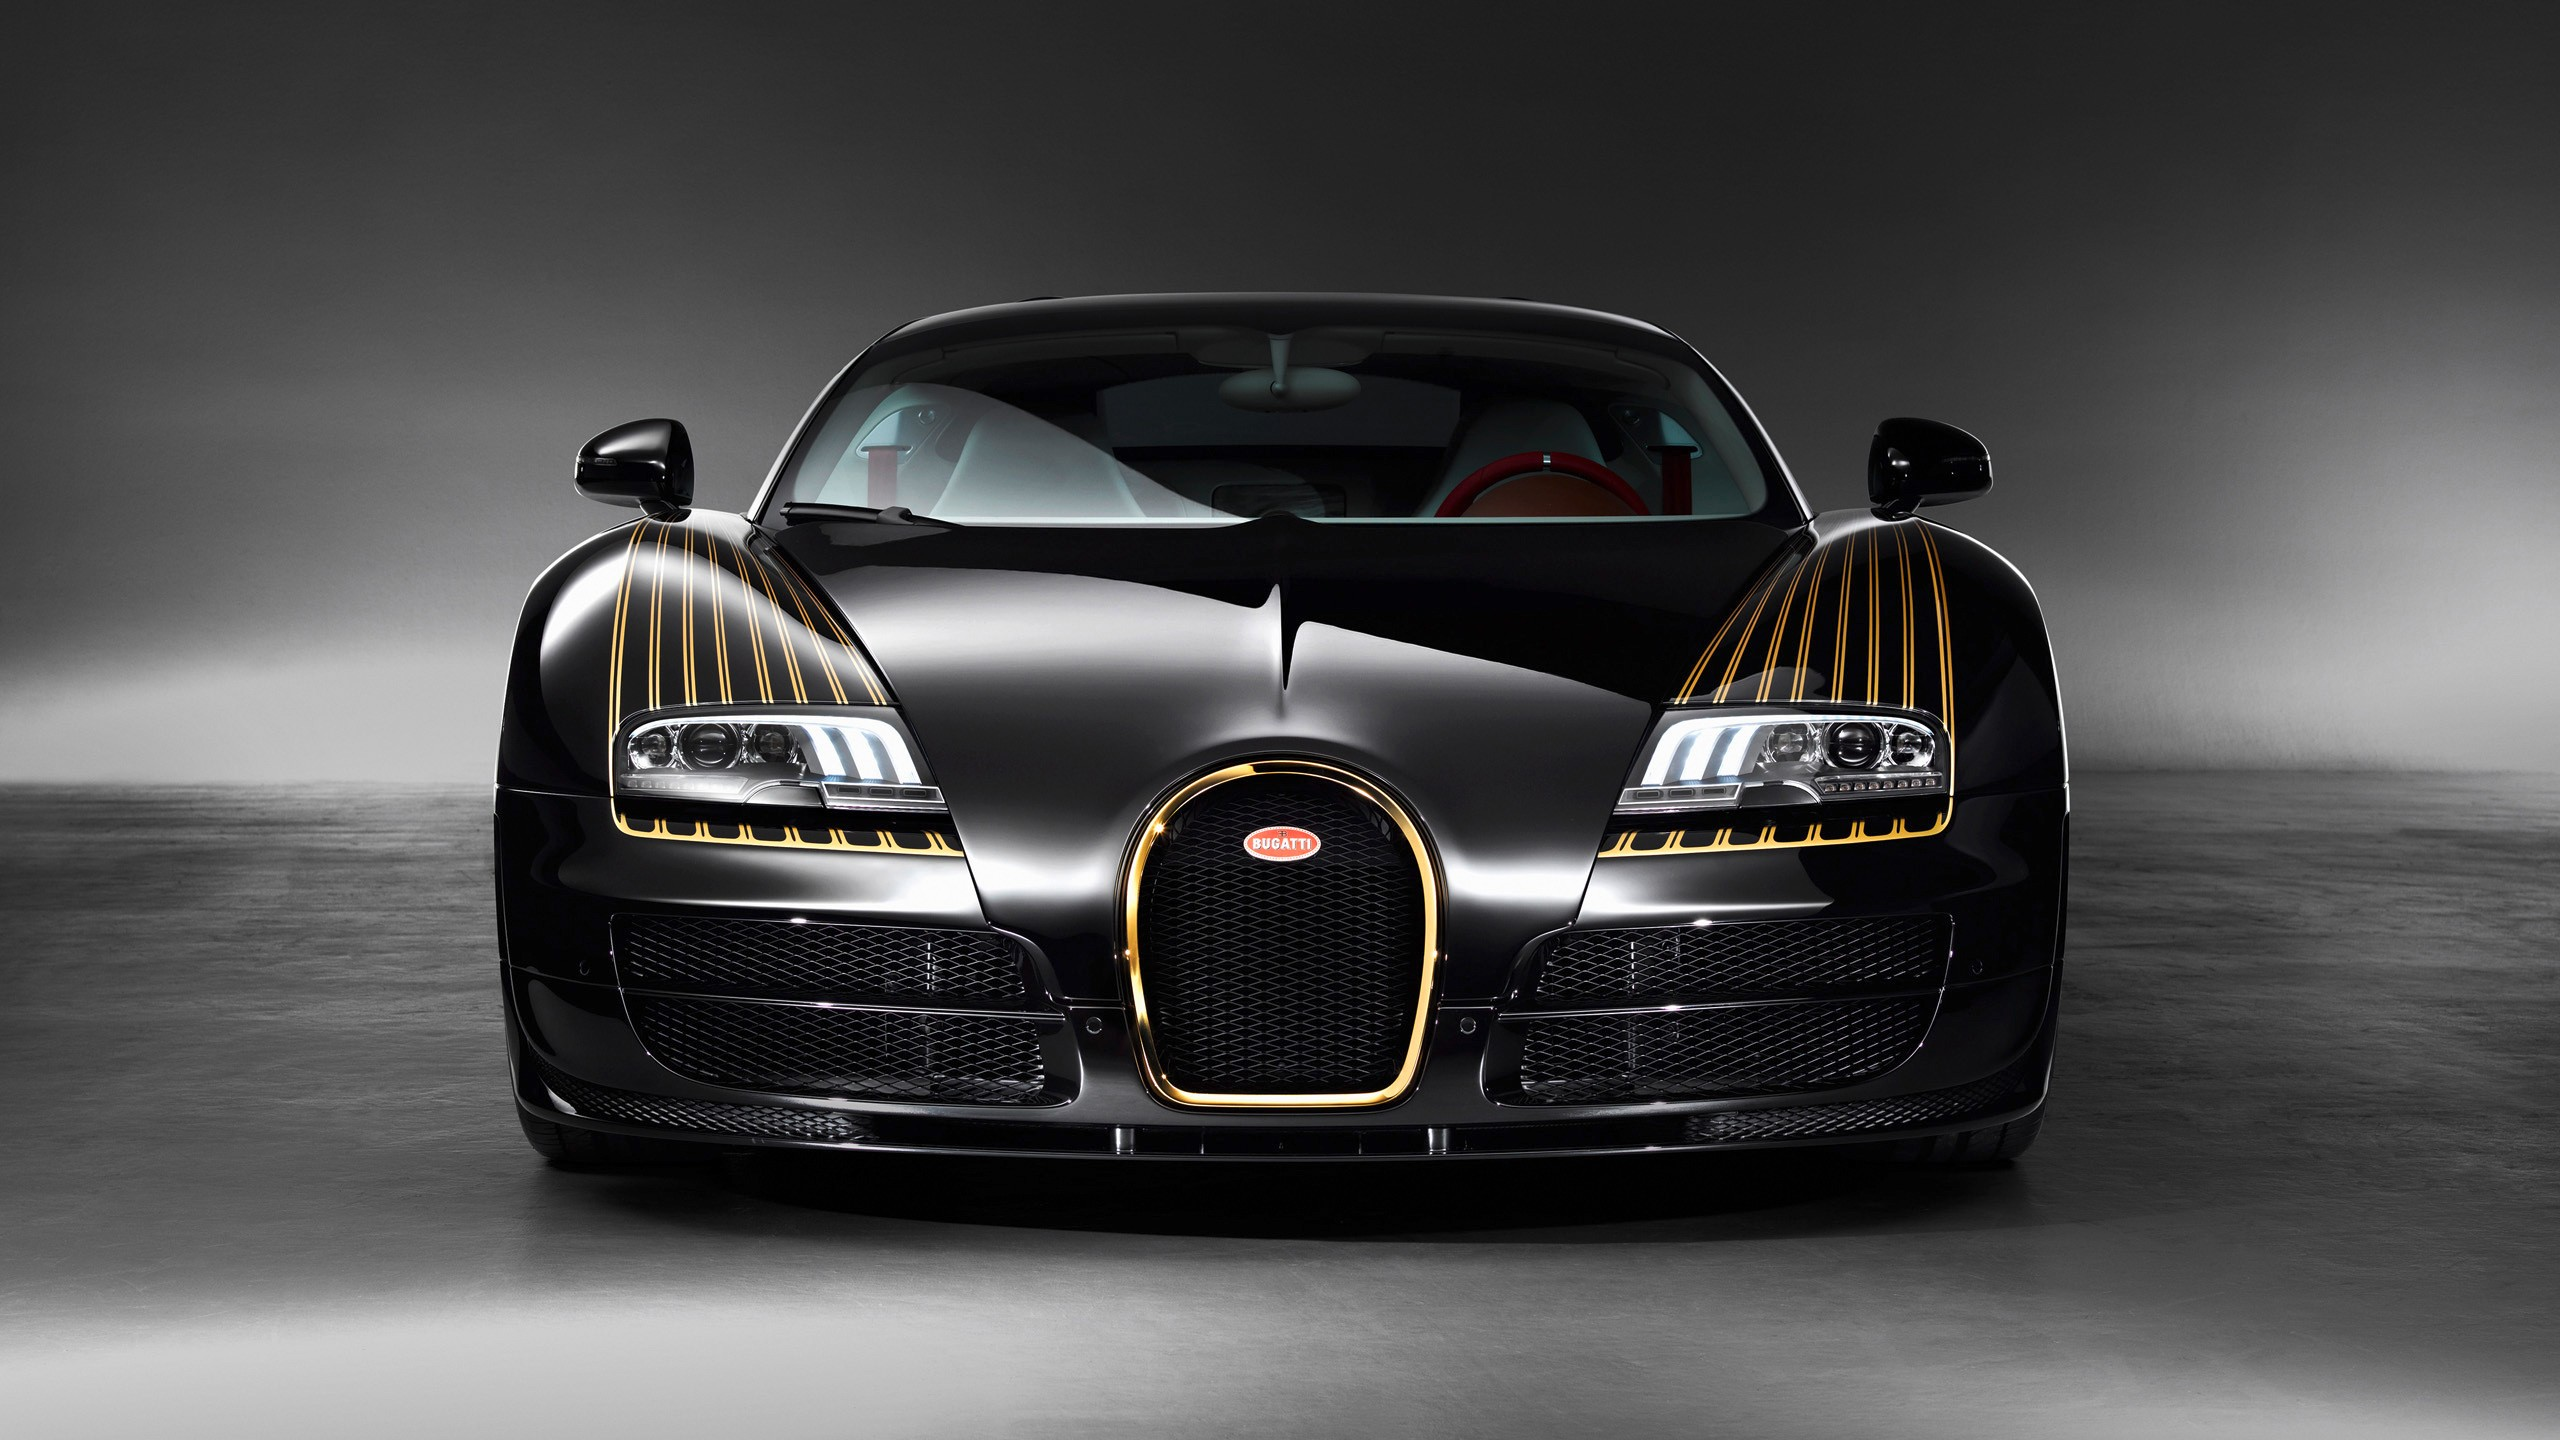 2014 bugatti veyron grand sport vitesse legend black bess 2 wallpaper hd car wallpapers. Black Bedroom Furniture Sets. Home Design Ideas